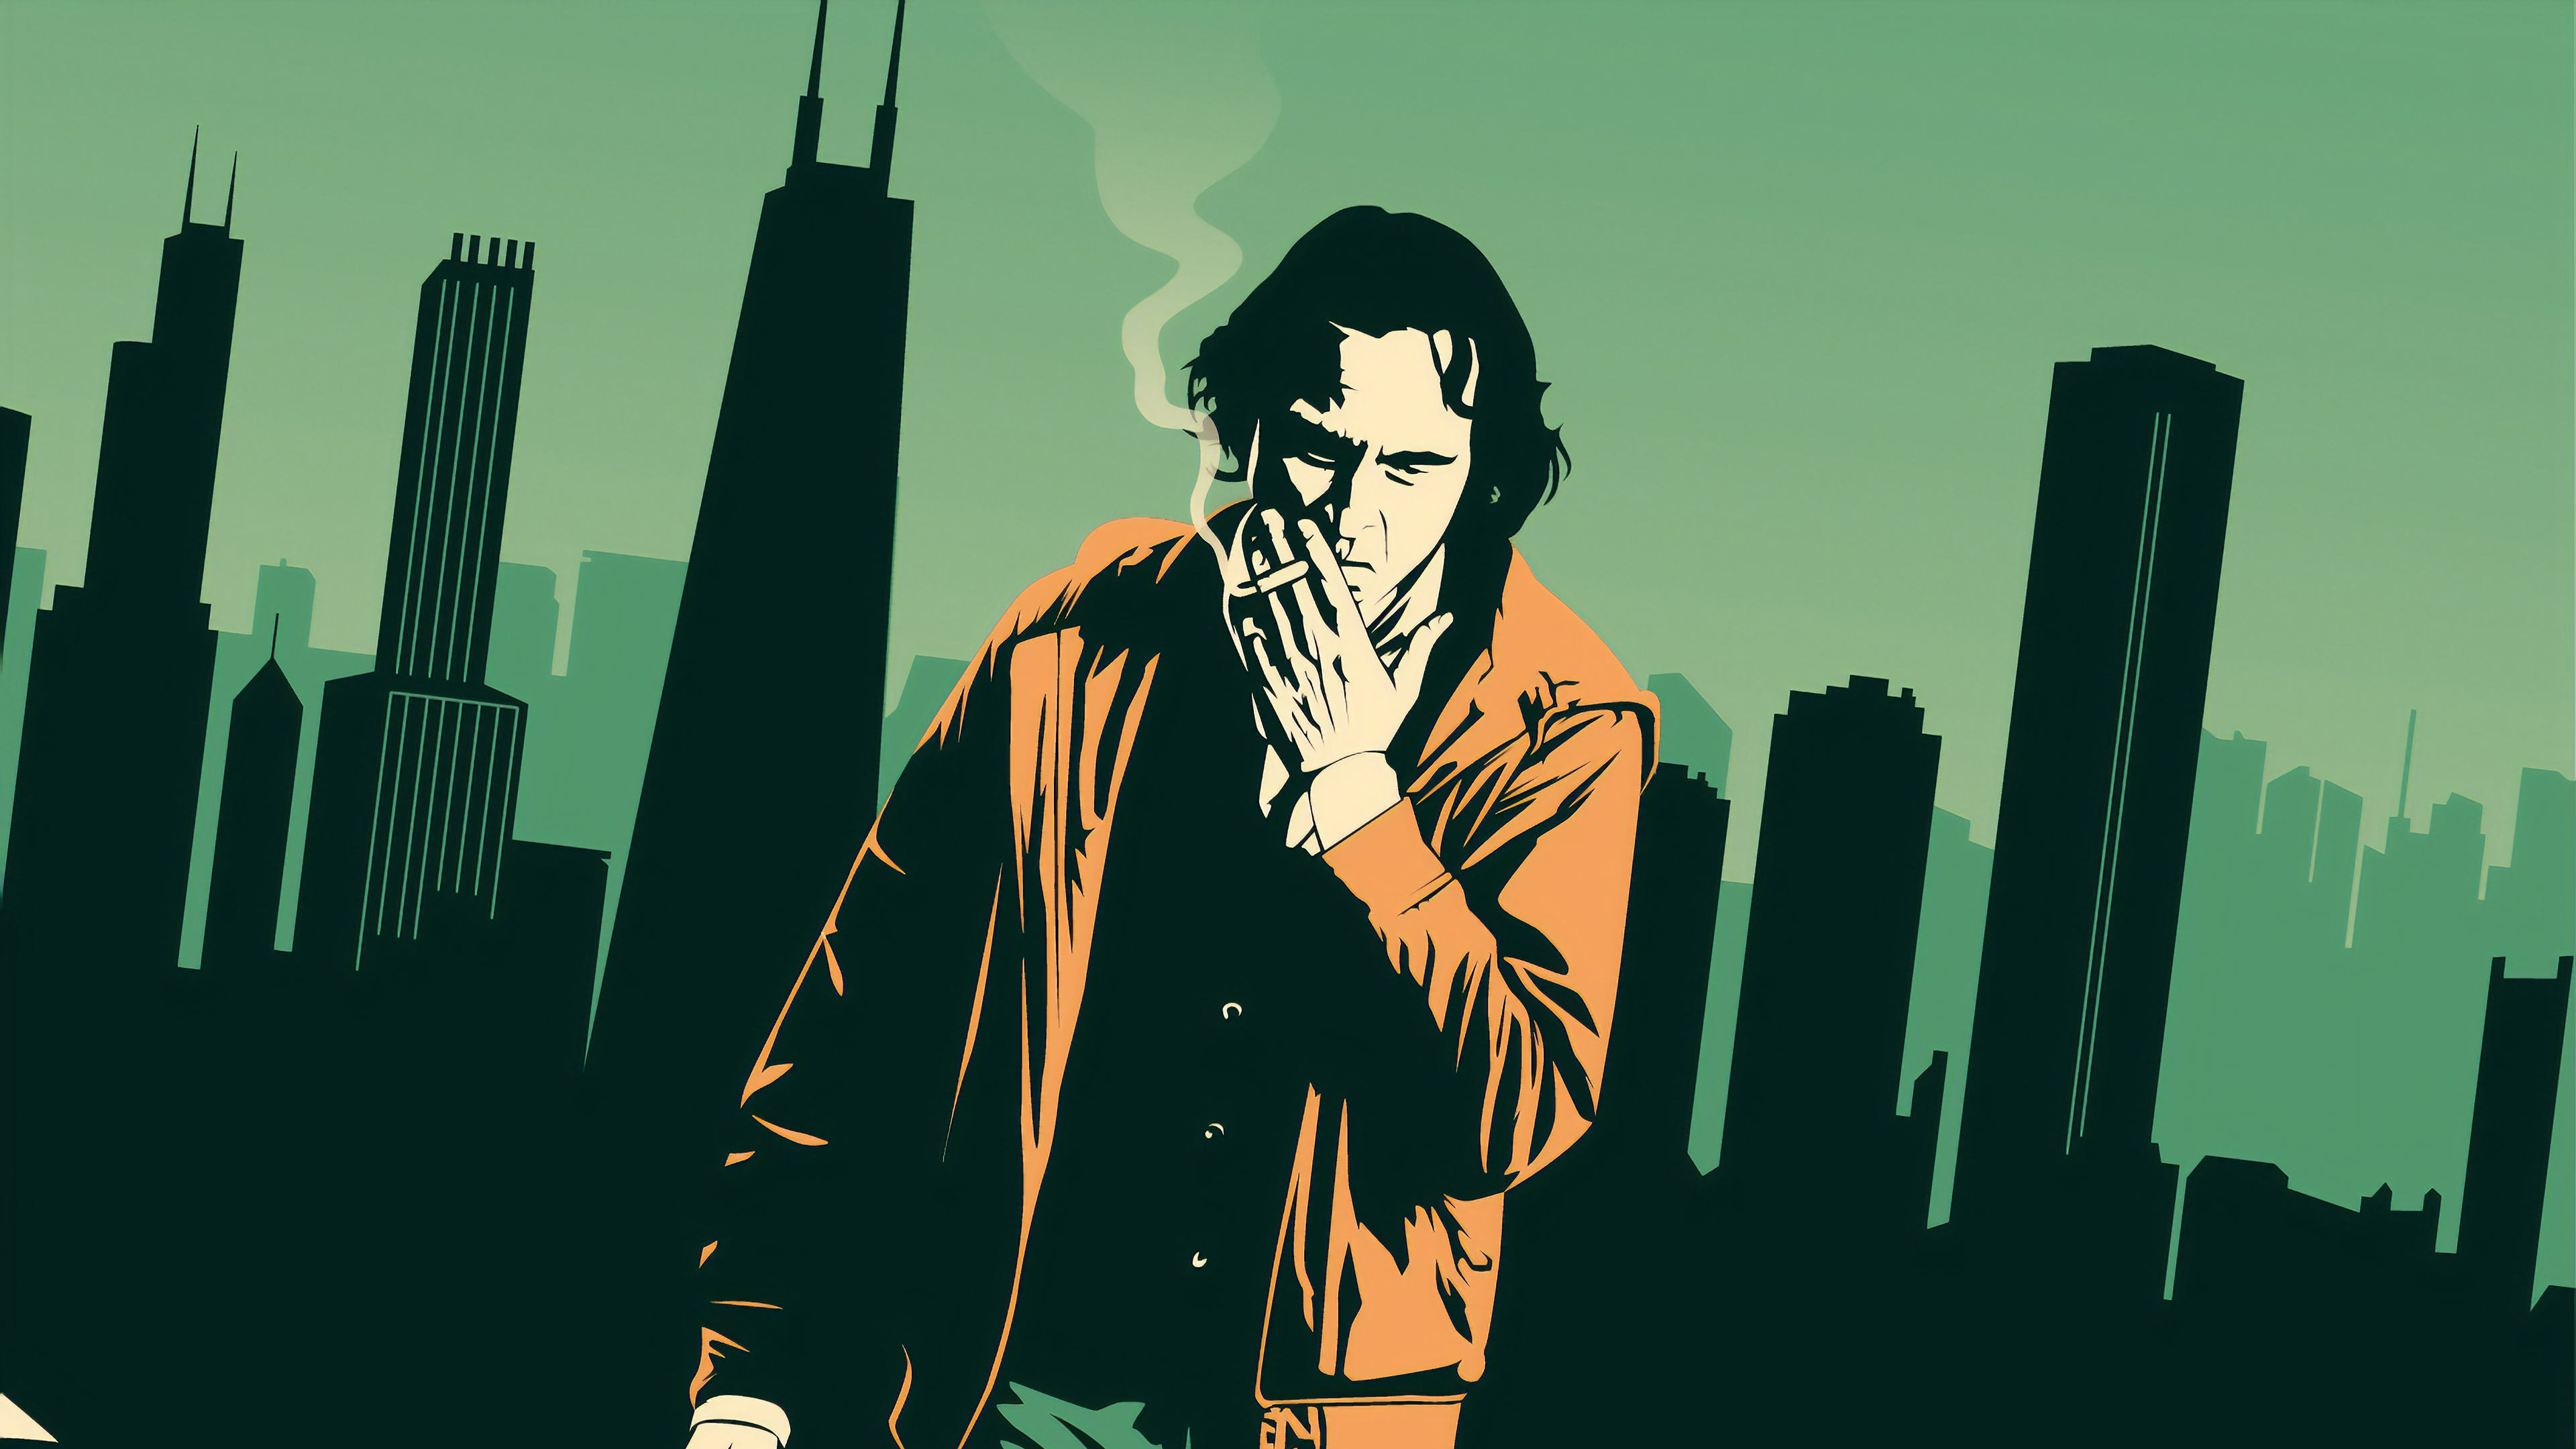 Joaquin Phoenix Smoking Fanart 4k Hd Movies 4k Wallpapers